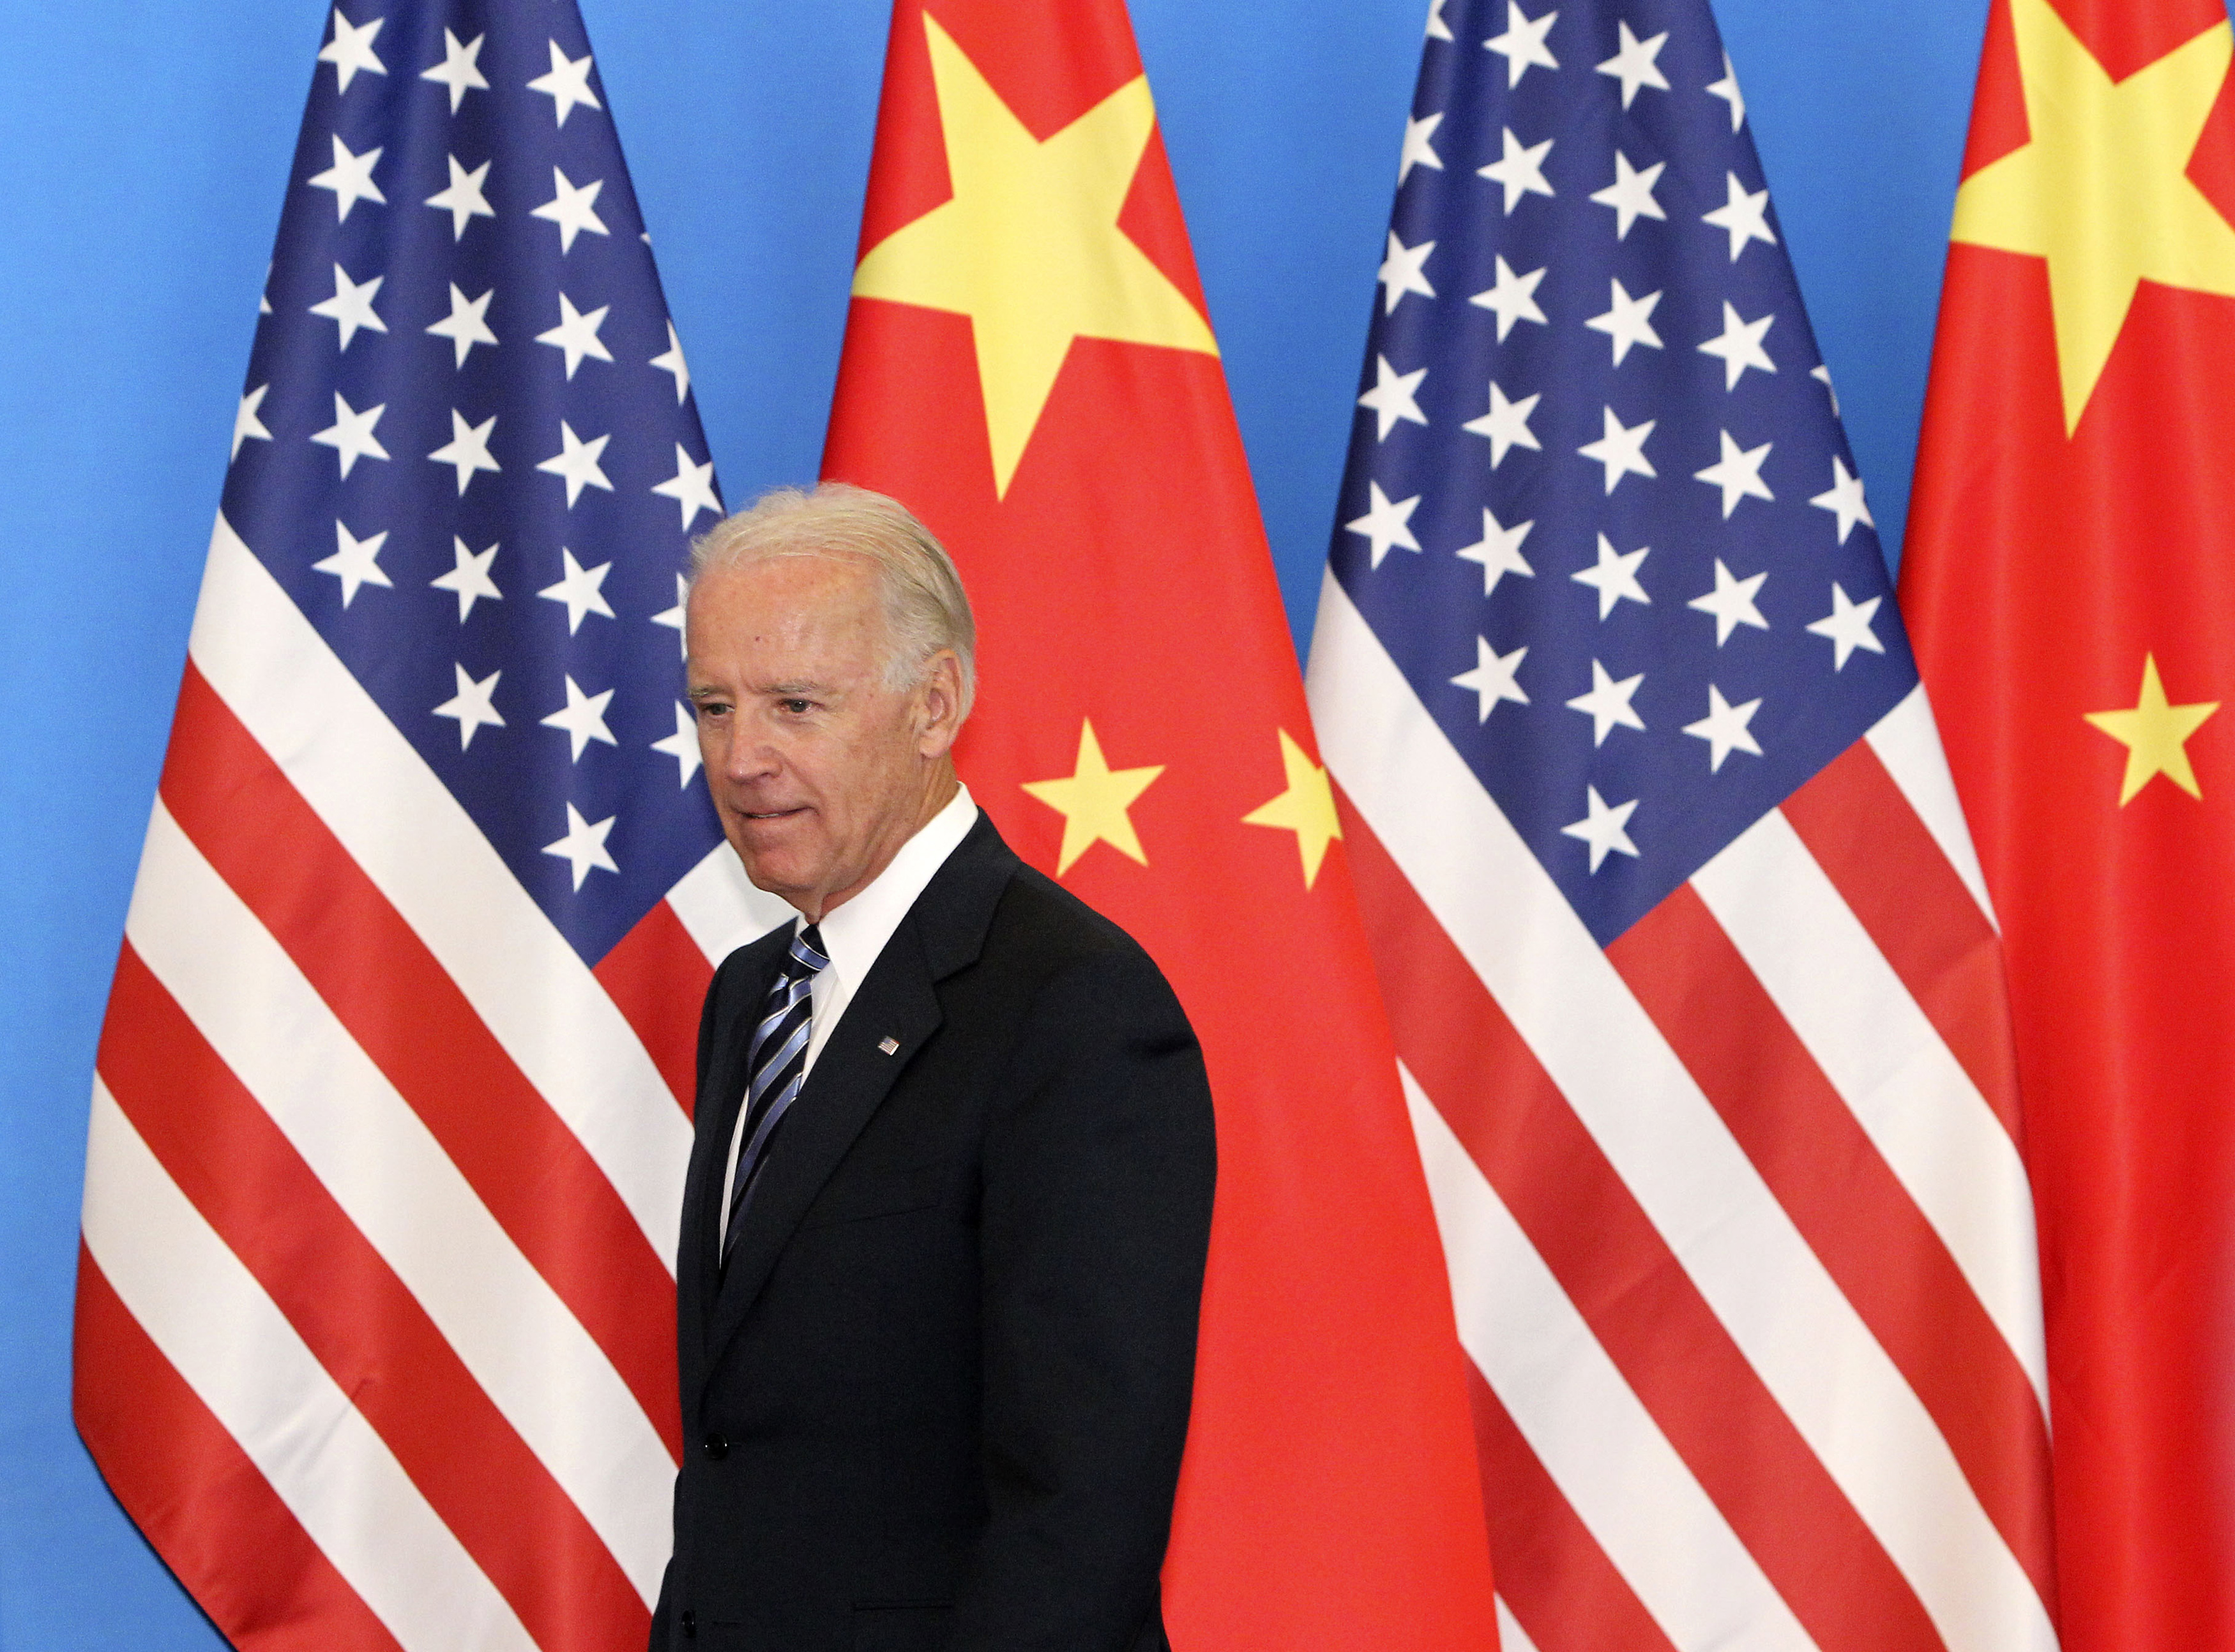 "U.S. Vice-President Joe Biden arrives with his Chinese counterpart Xi Jinping (not pictured) at a China-US Business Dialogue in the Beijing Hotel in Beijing August 19, 2011. China and the United States ""have a responsibility to strengthen macro-economic policy coordination and together boost market confidence,"" Xi told visiting Biden on Thursday, according to Chinese state media. REUTERS/How Hwee Young/Pool (CHINA - Tags: POLITICS)"